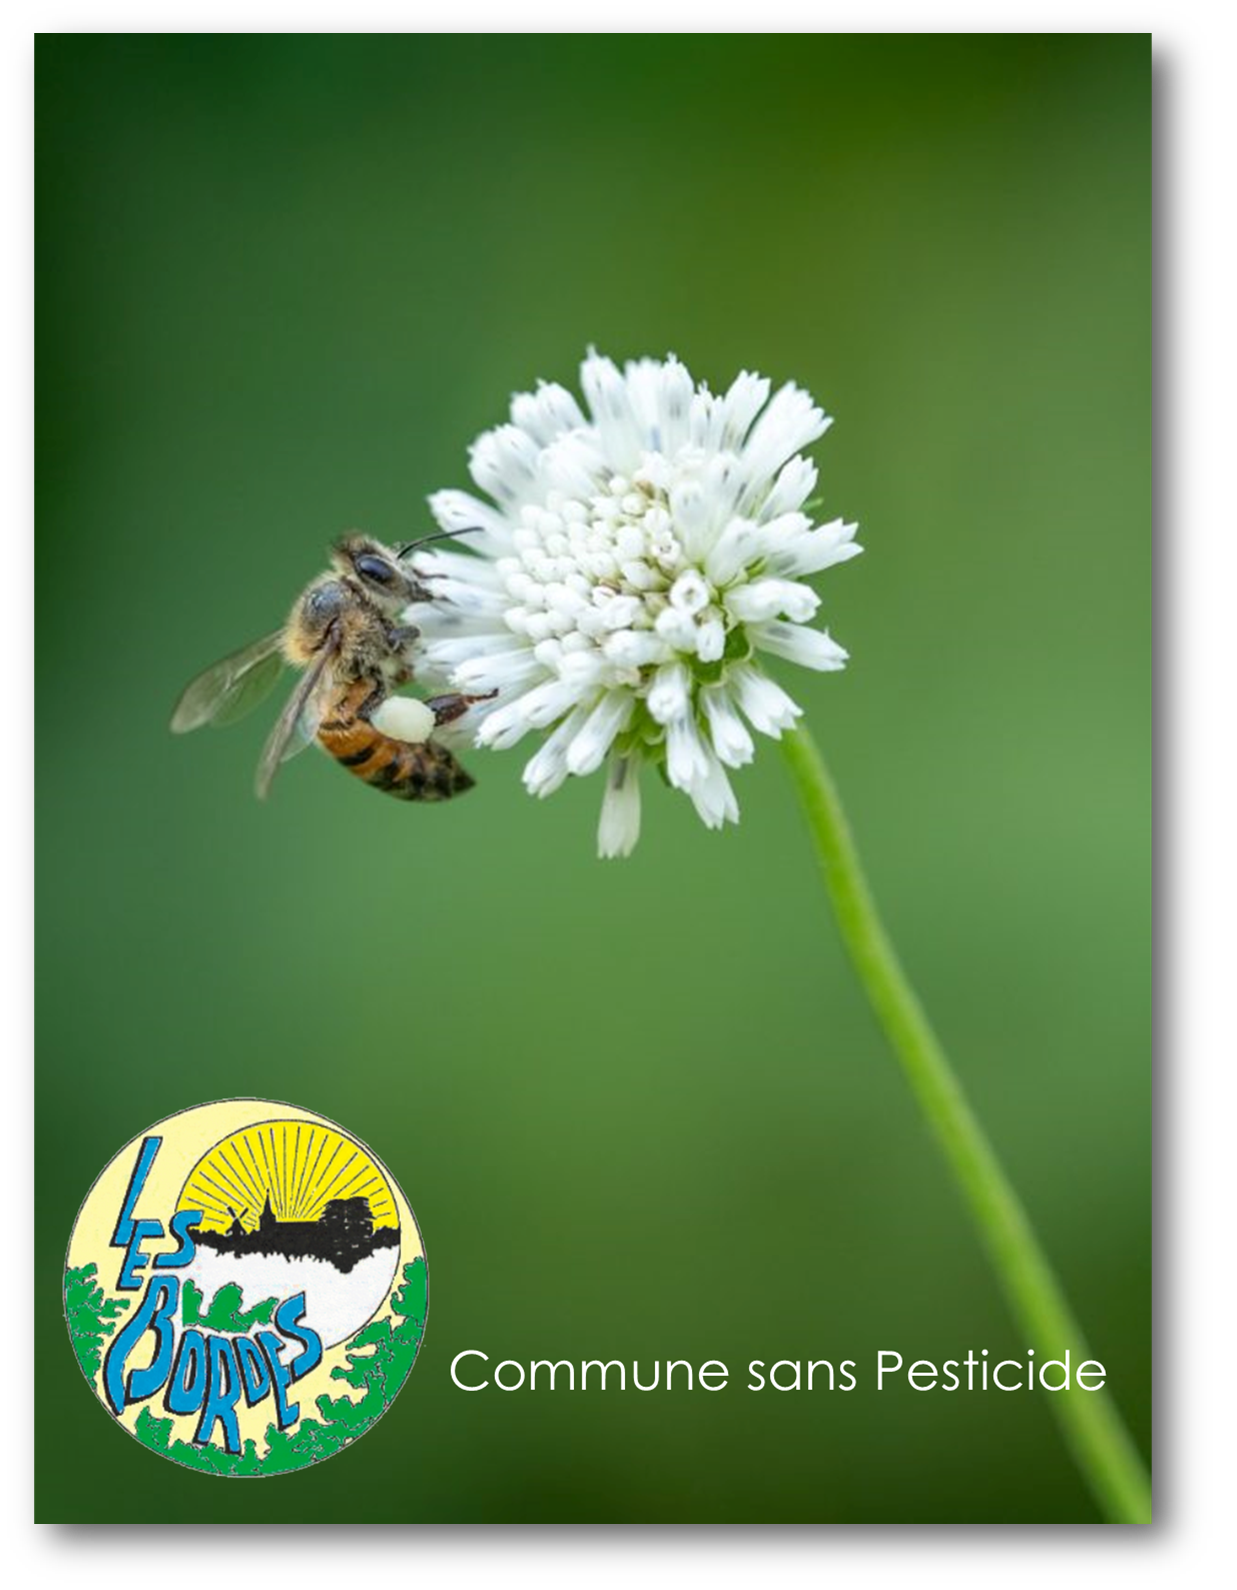 Les Bordes Commune sans Pesticide